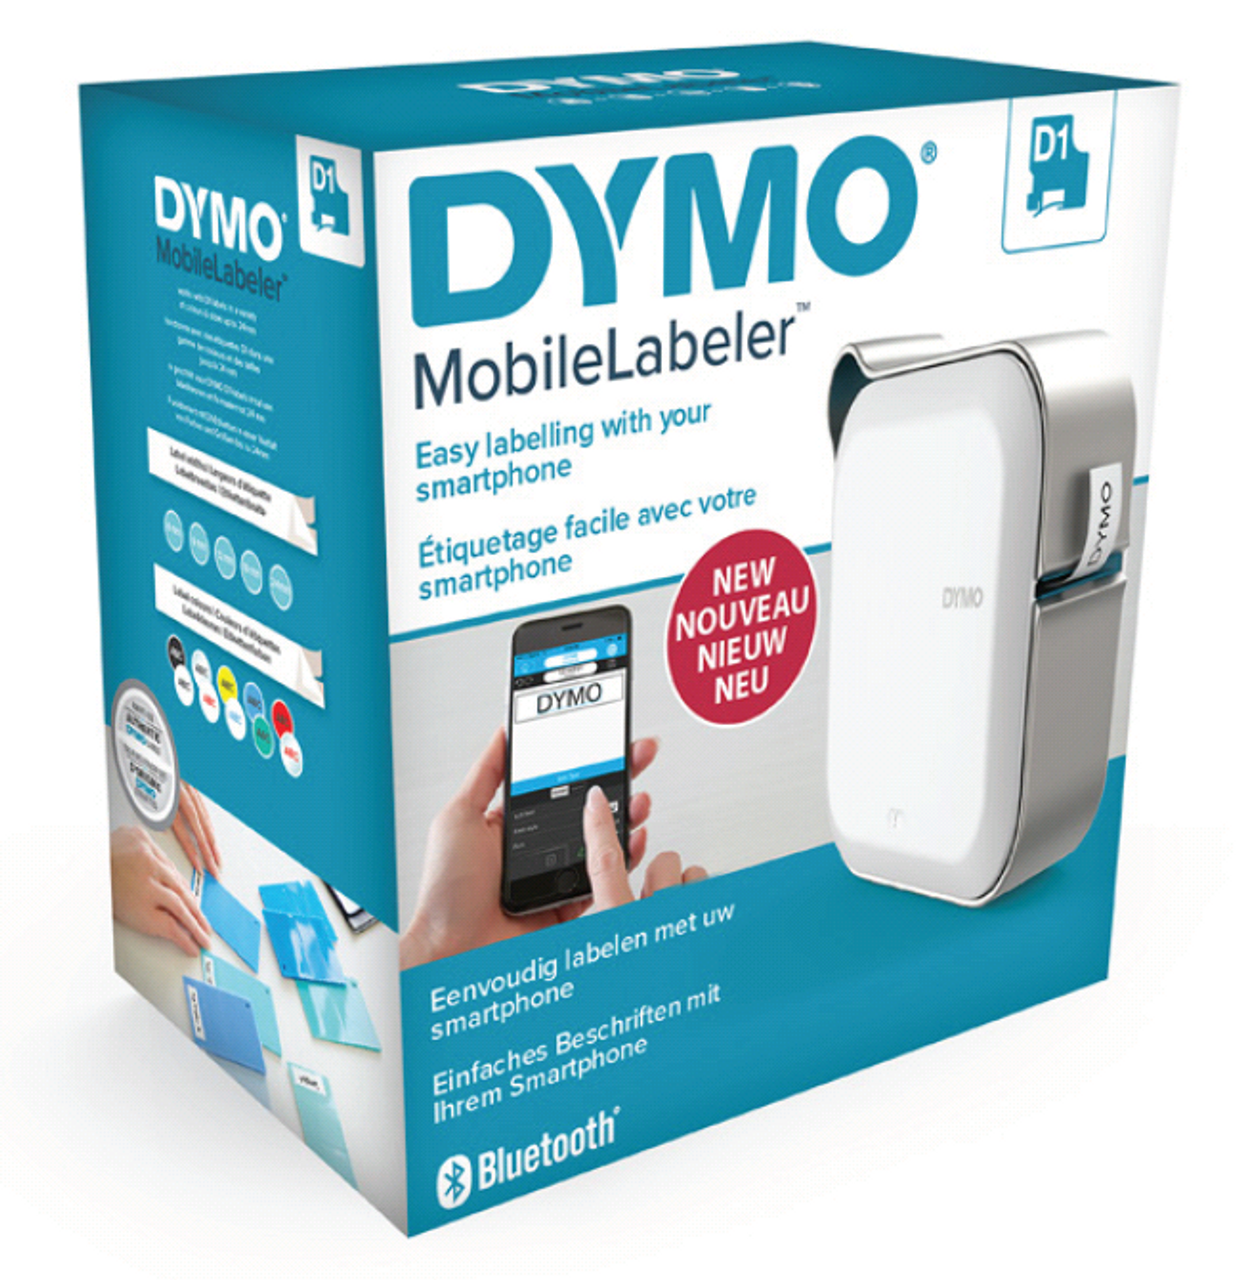 Dymo Mobile Labeller Mobilelabel - Lastest from Dymo @ DymoOnline